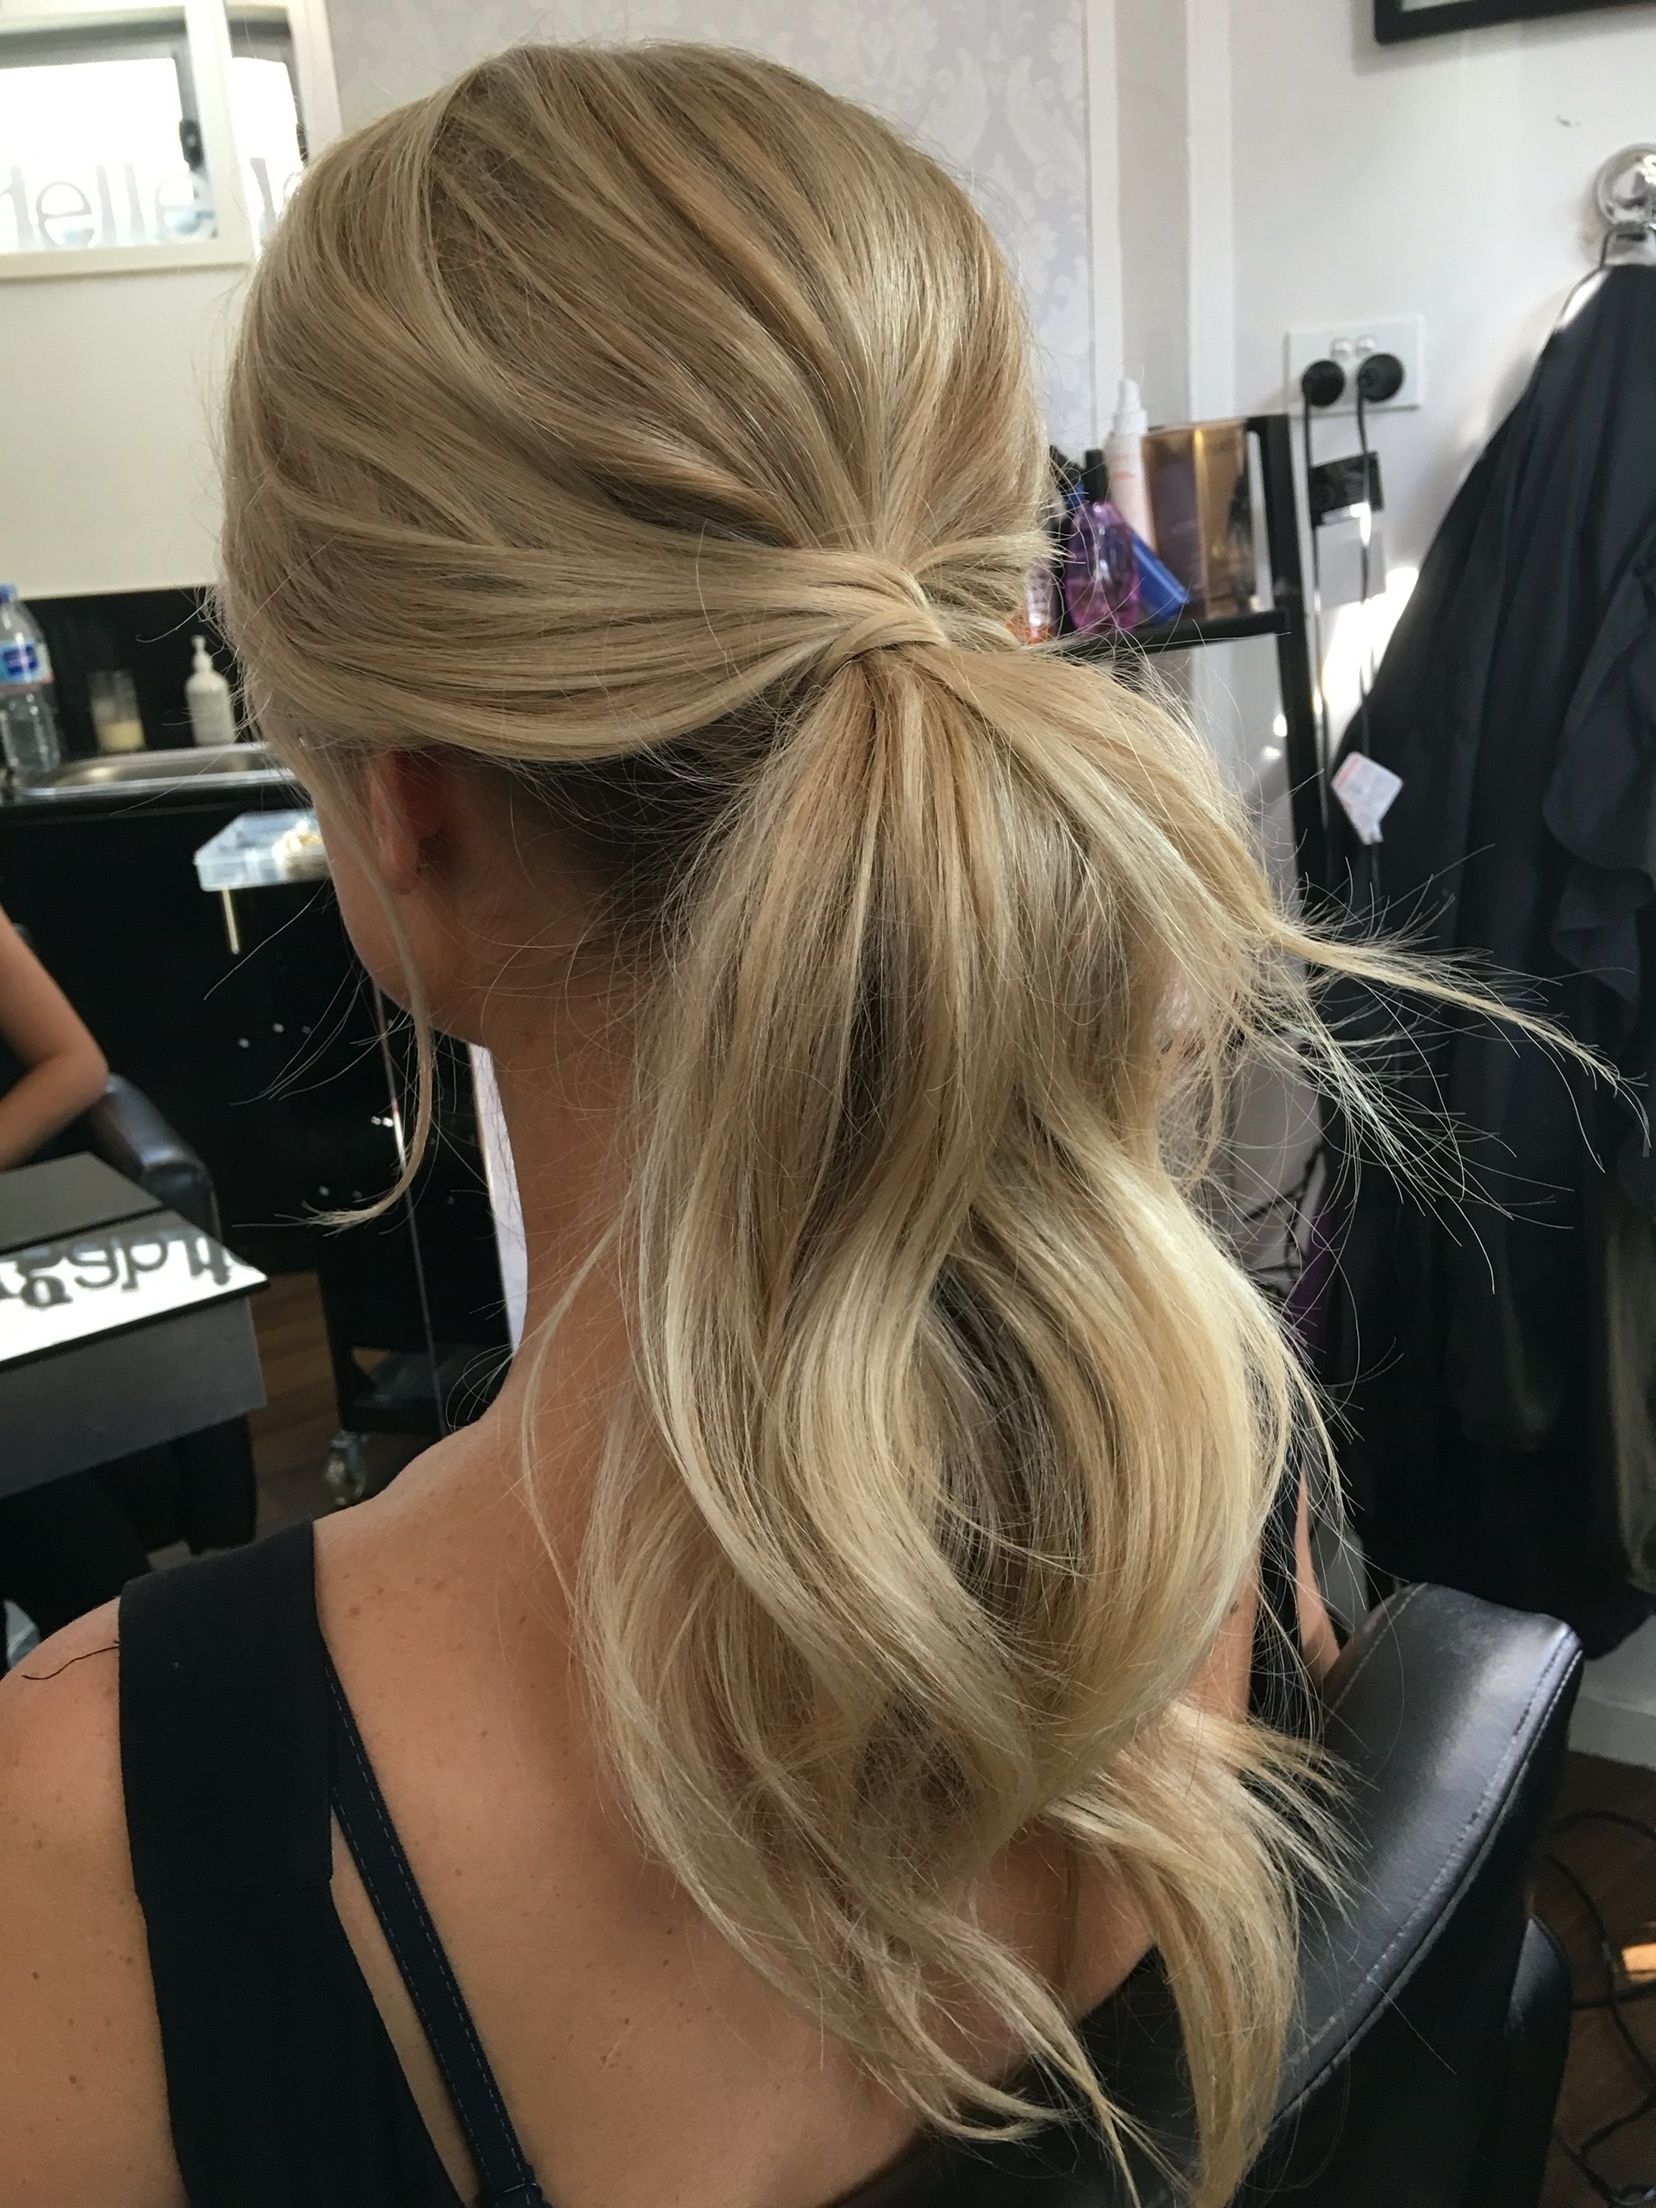 Wedding Hairstyles (View 4 of 20)